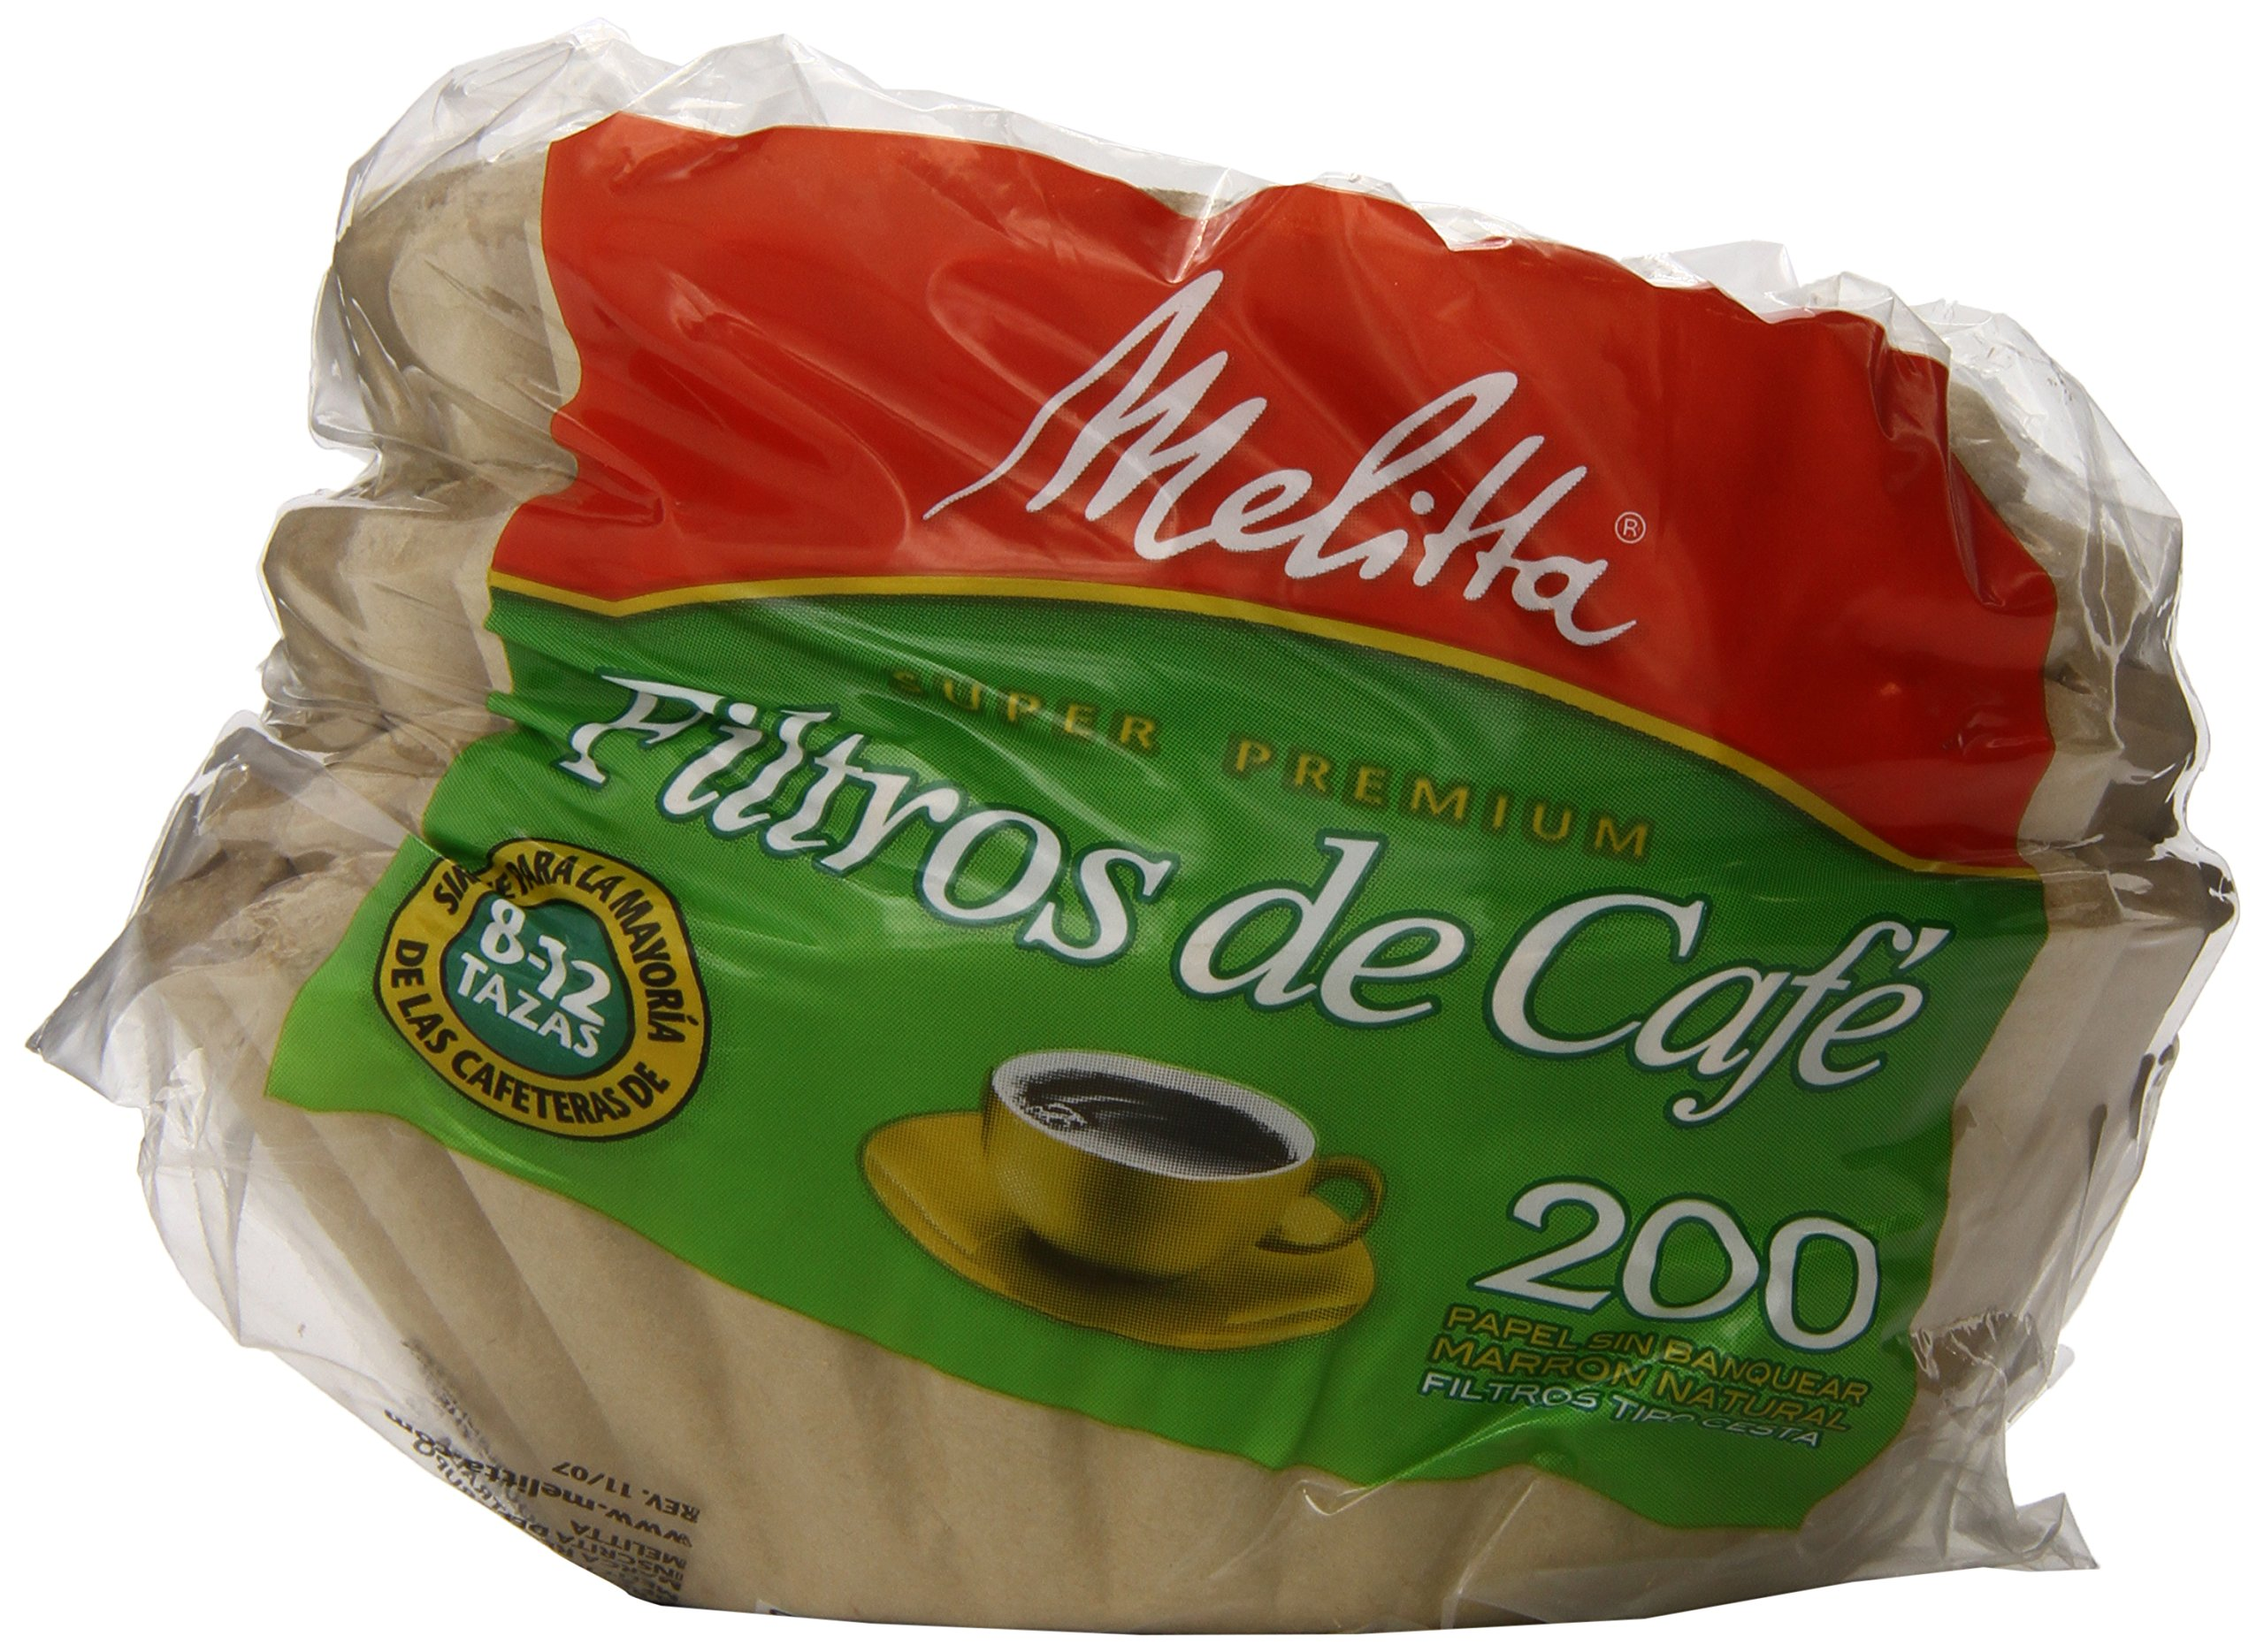 Melitta Basket Coffee Filters, Natural Brown (8 to 12-Cup), 200-Count Filters (Pack of 8)